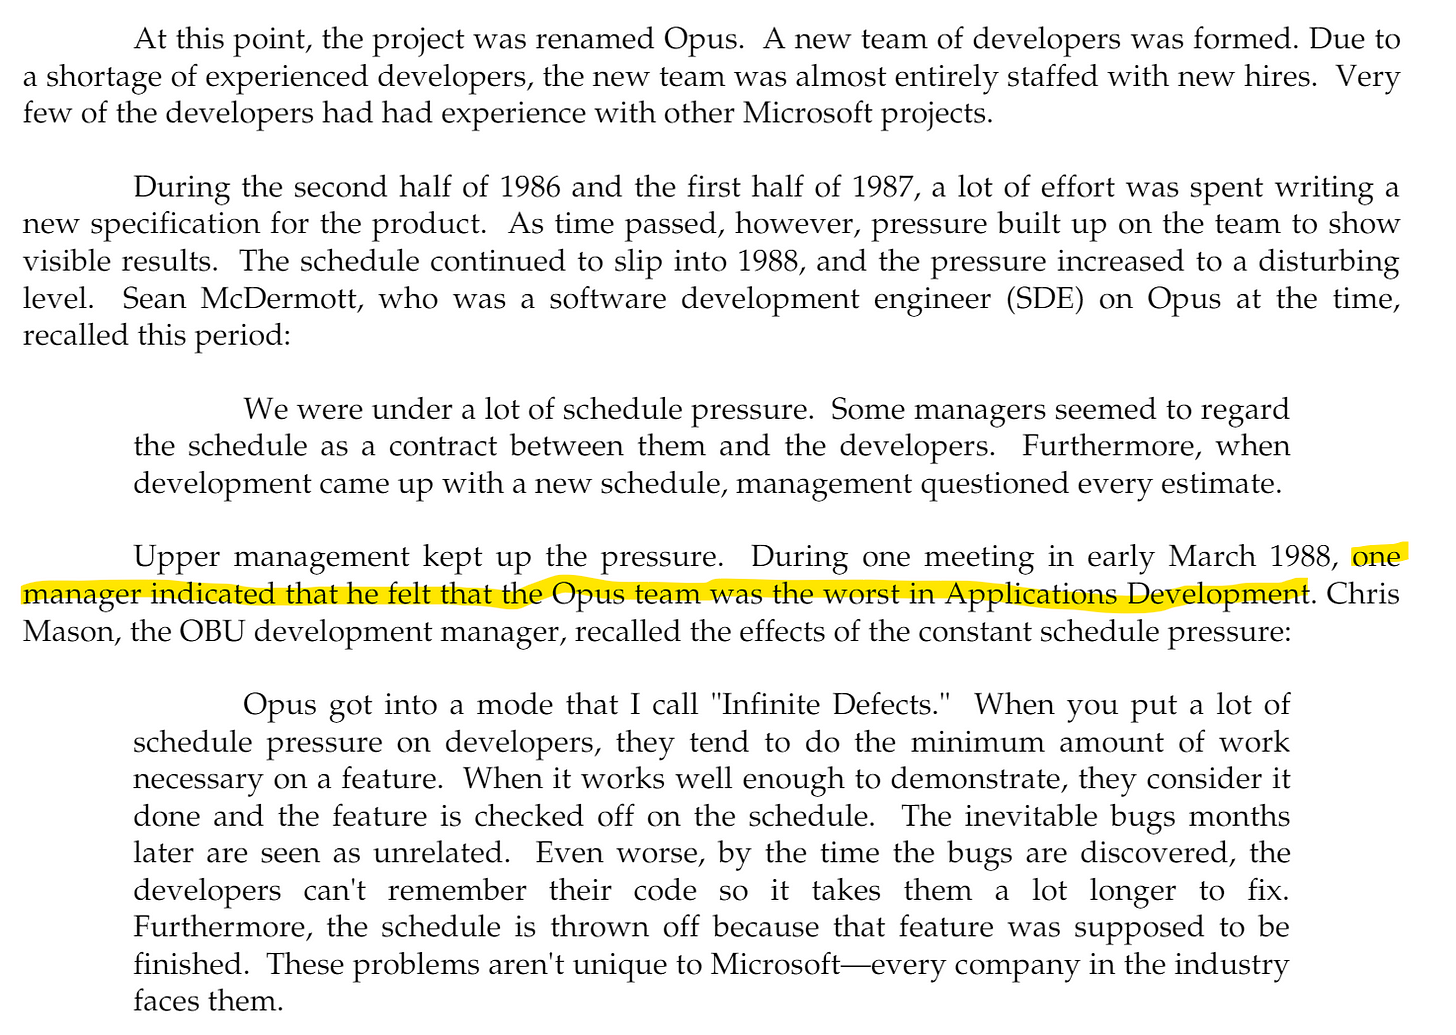 """During one meeting in early March 1988, one manager indicated that he felt the Opus team was the worst in Applications Development."""